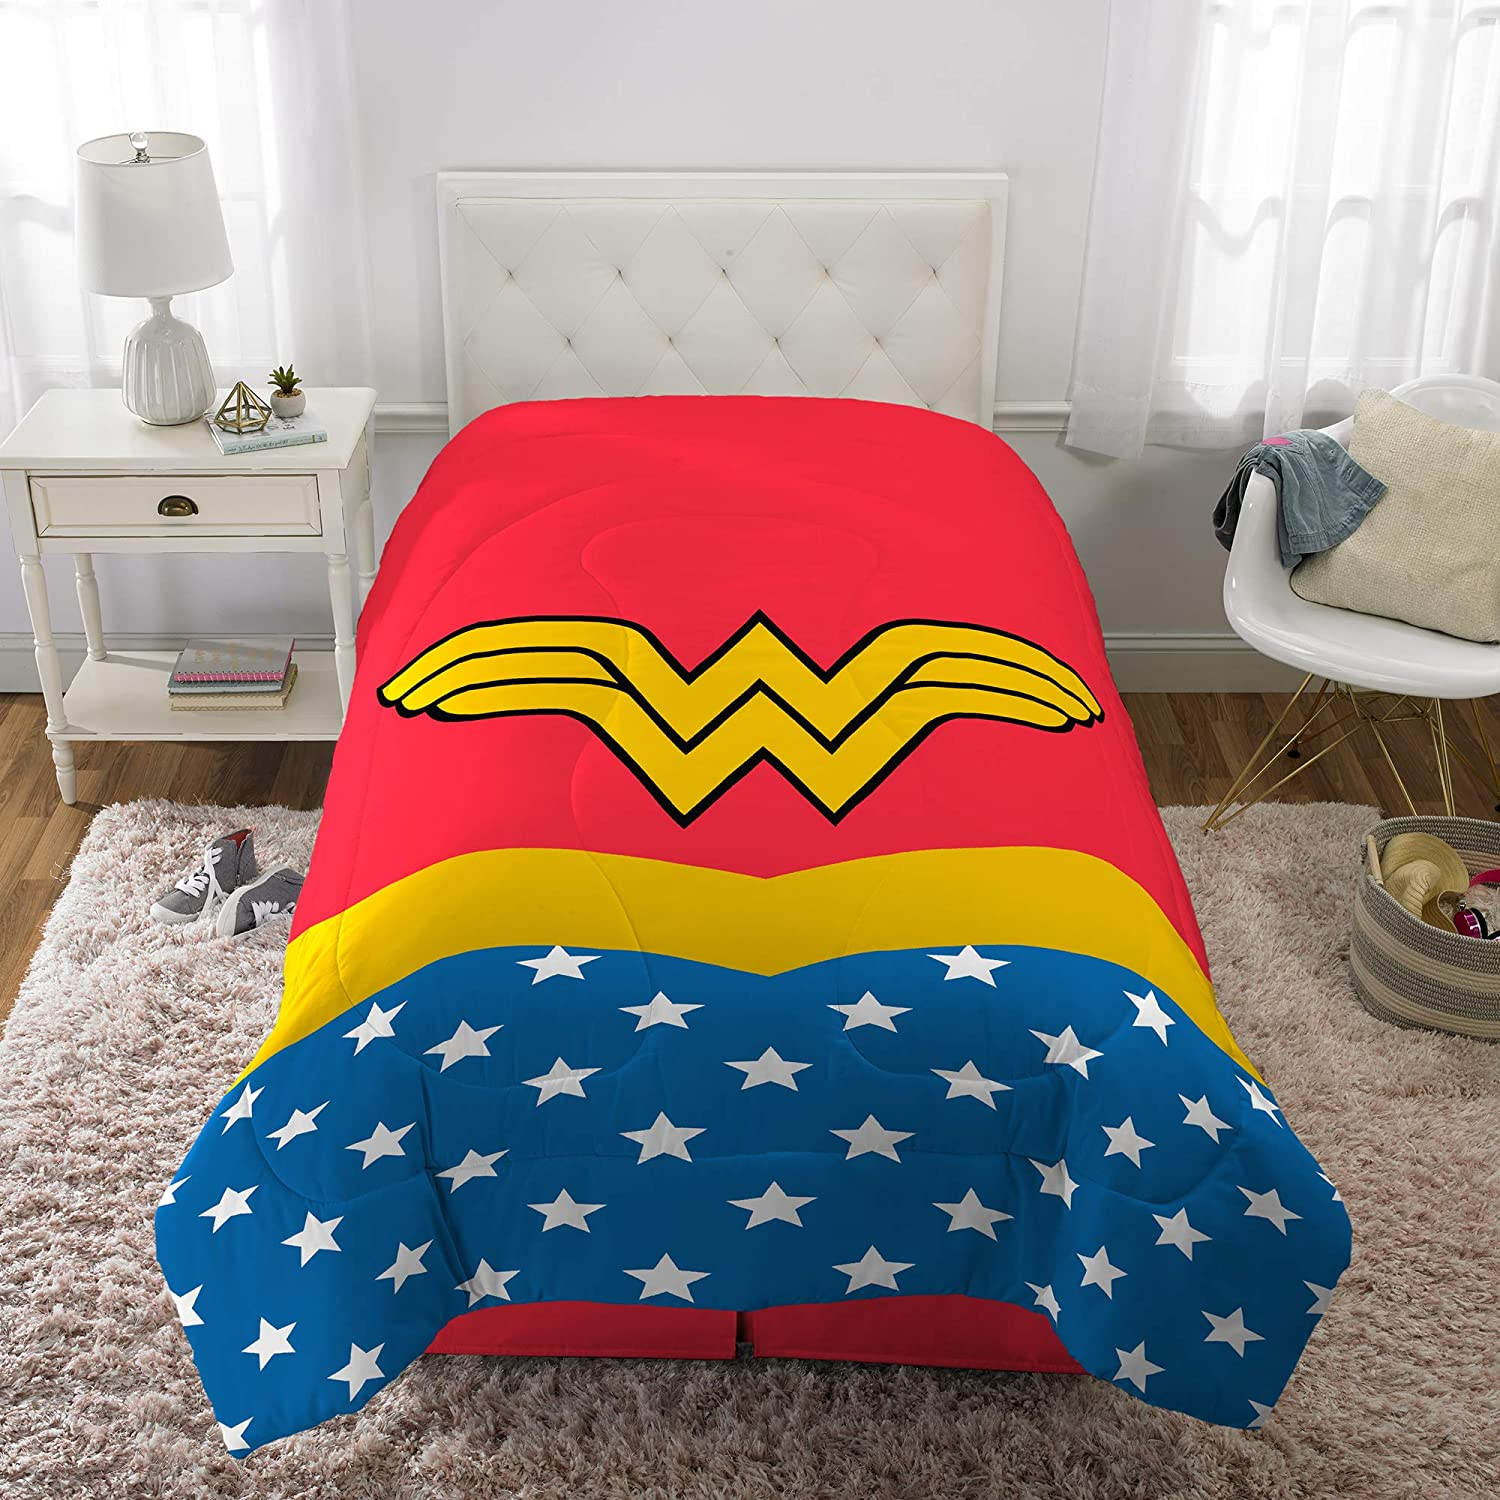 Warner Bros. I Am Wonder Woman Comforter, Twin/Full